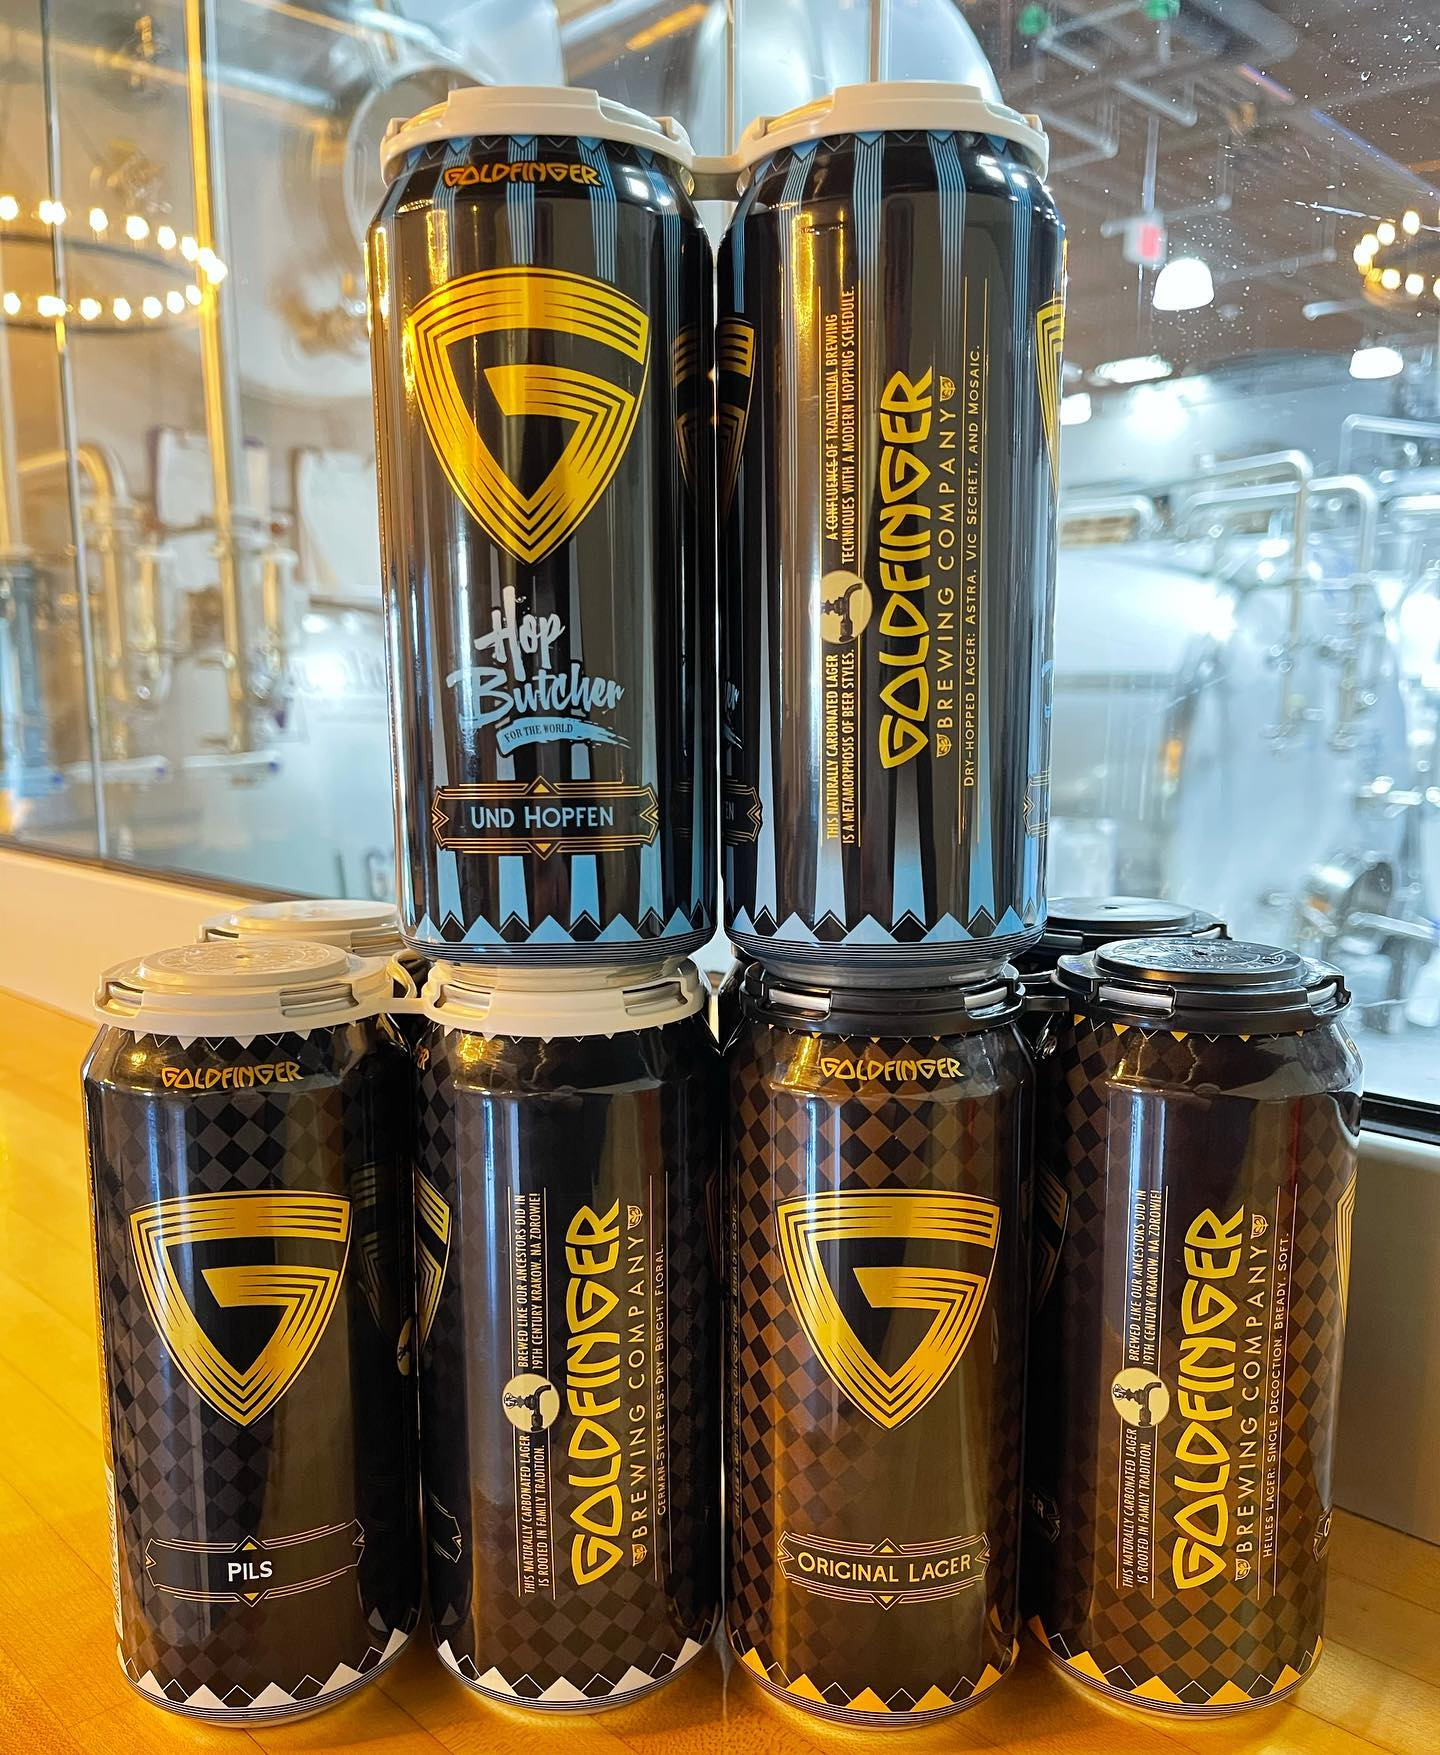 Goldfinger Brewing's three different type of cans, including their collab with Hop Butcher